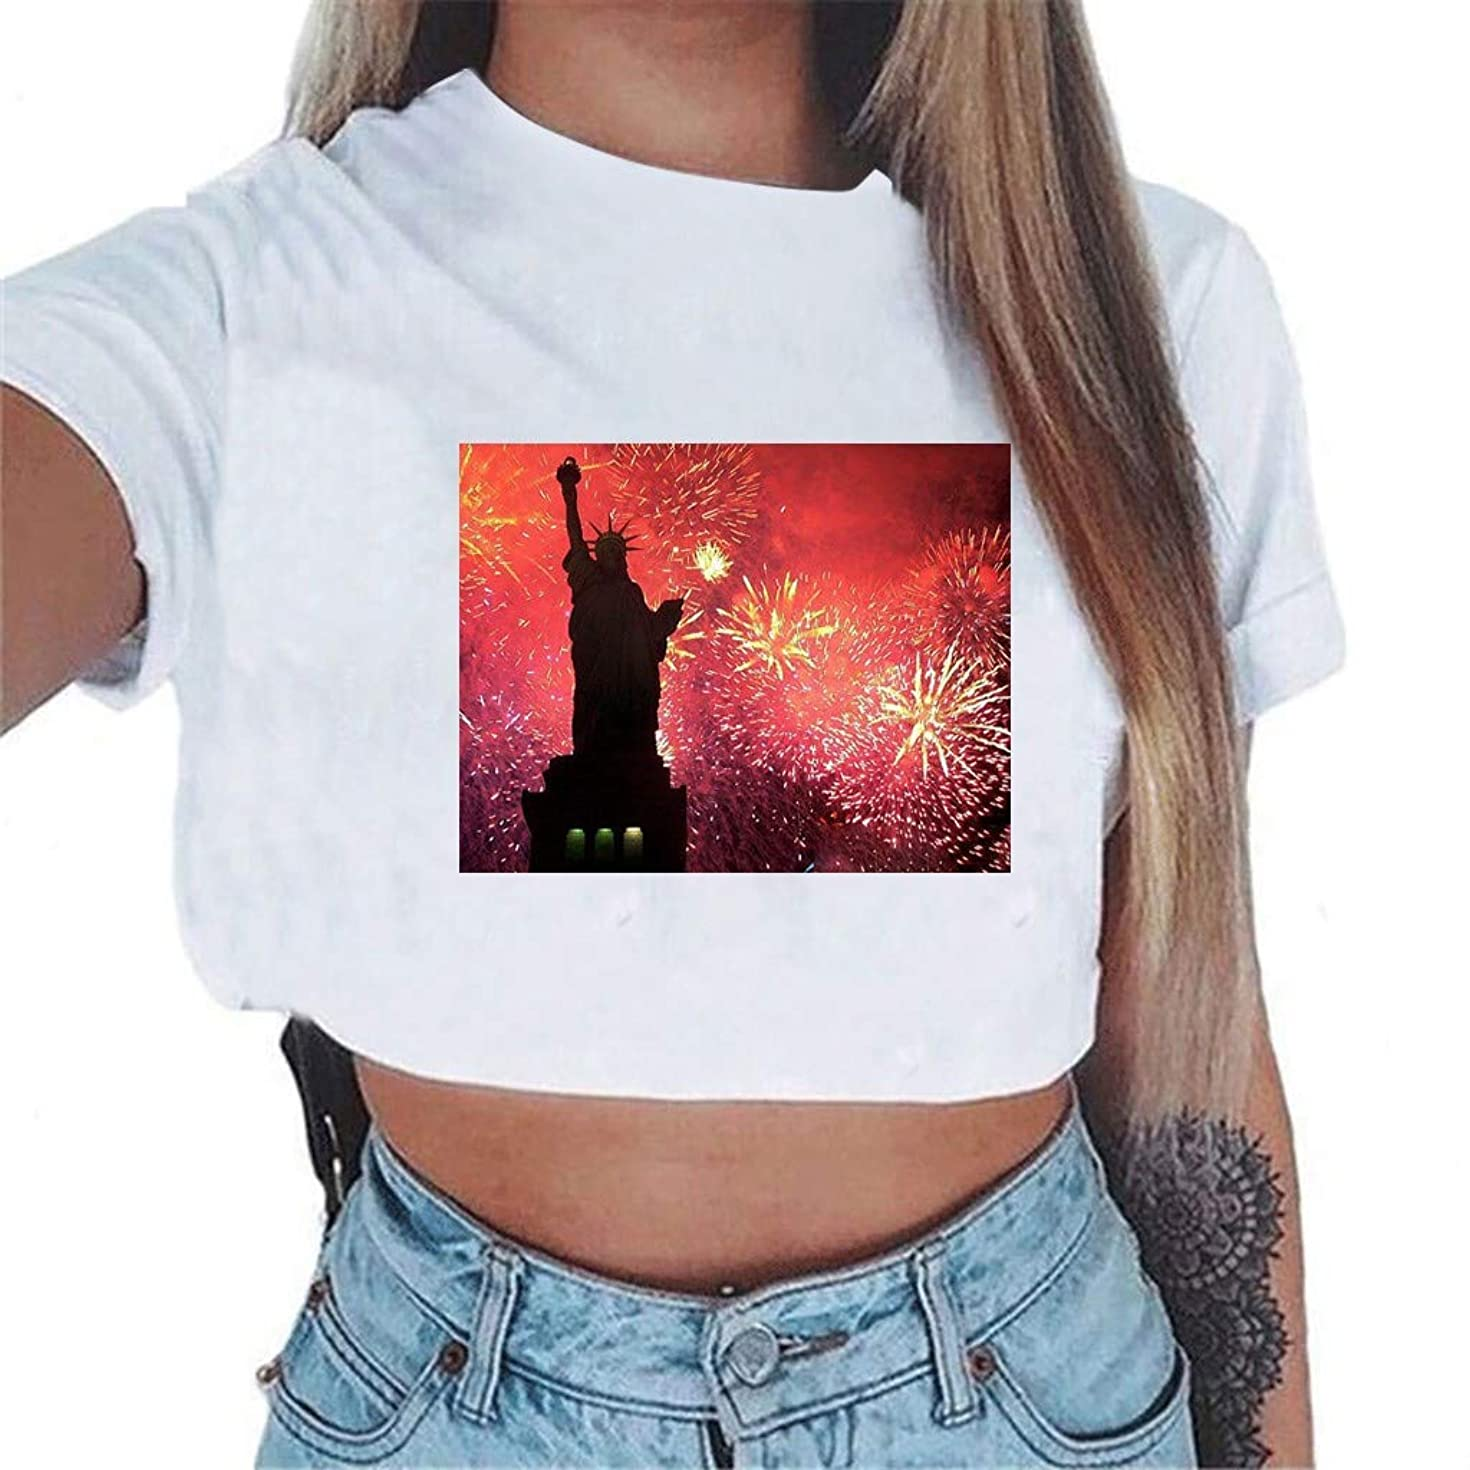 T Shirt for Women American Flag Statue of Liberty Printed Tees Shirt Lady Casual Short Sleeve Blouse Tops